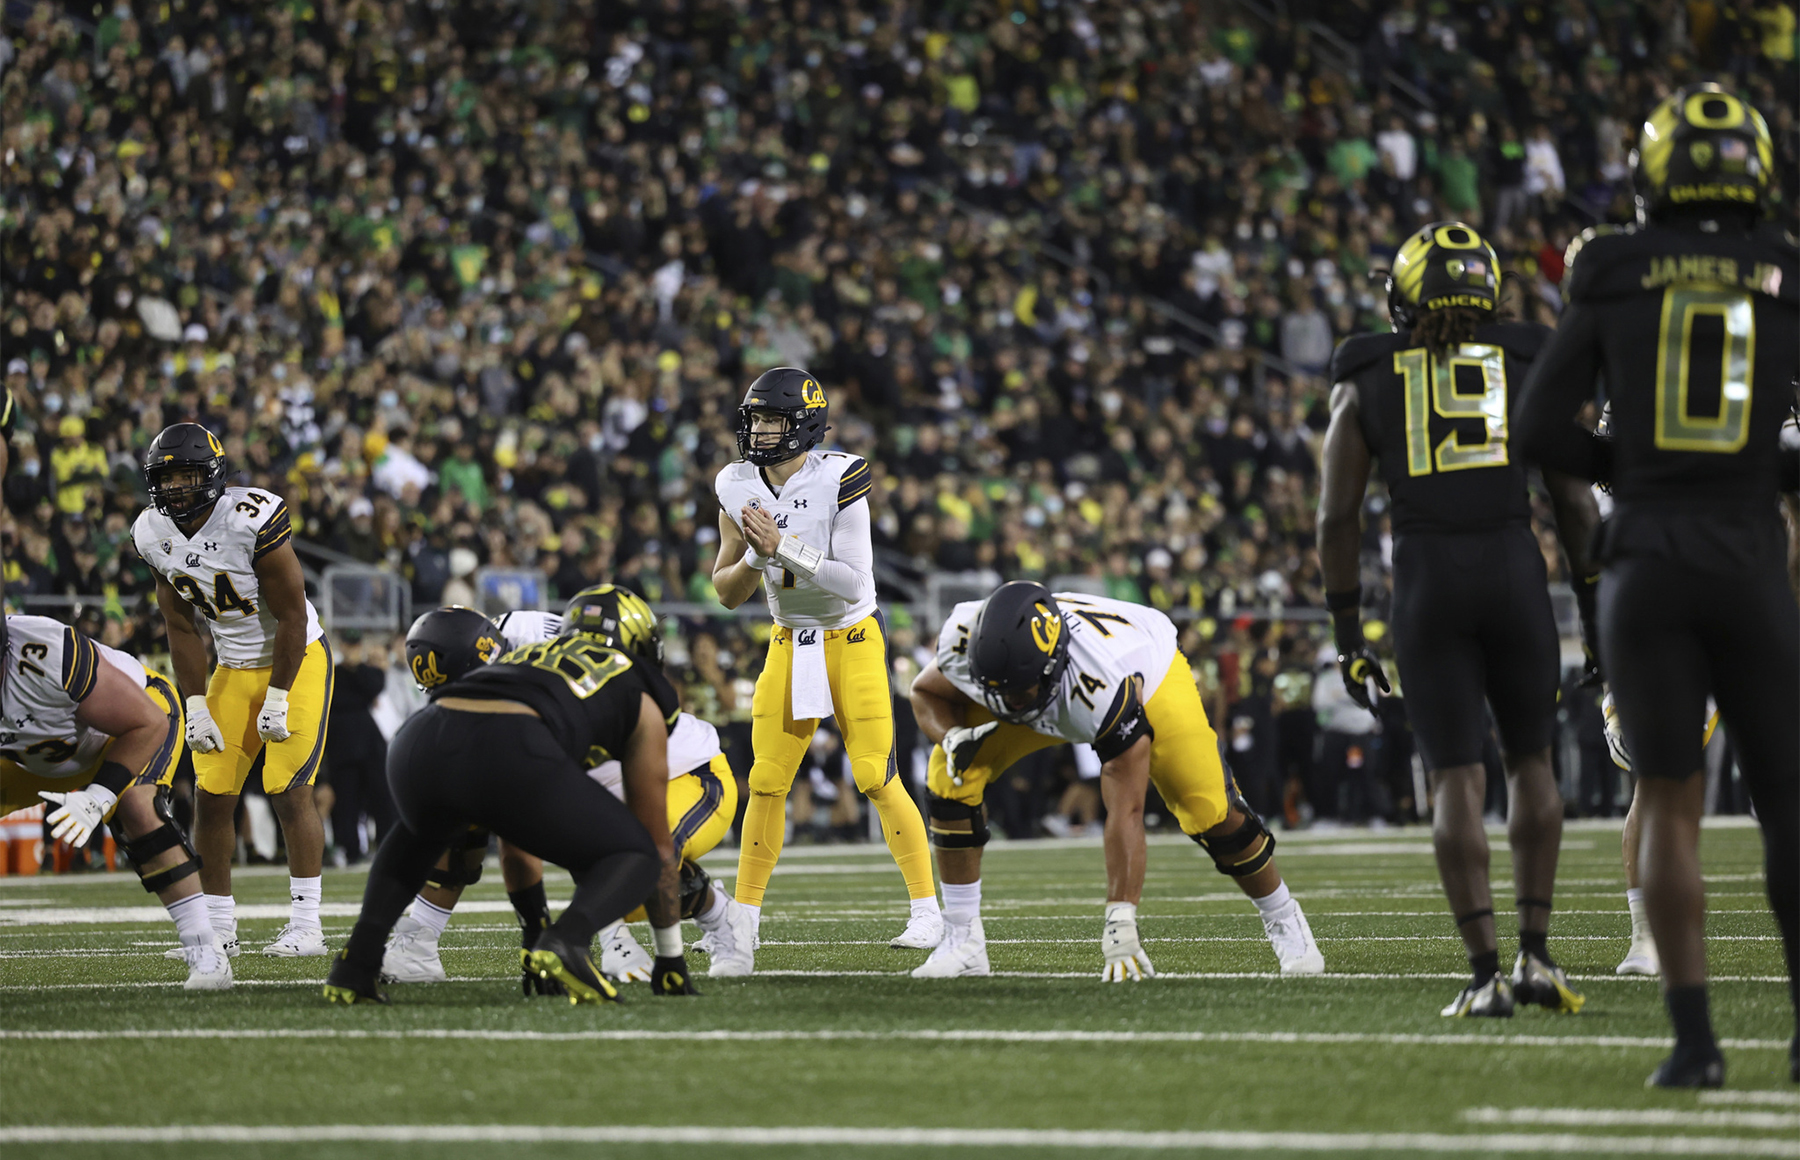 That dark night: Cal scares No. 9 Oregon but comes up short